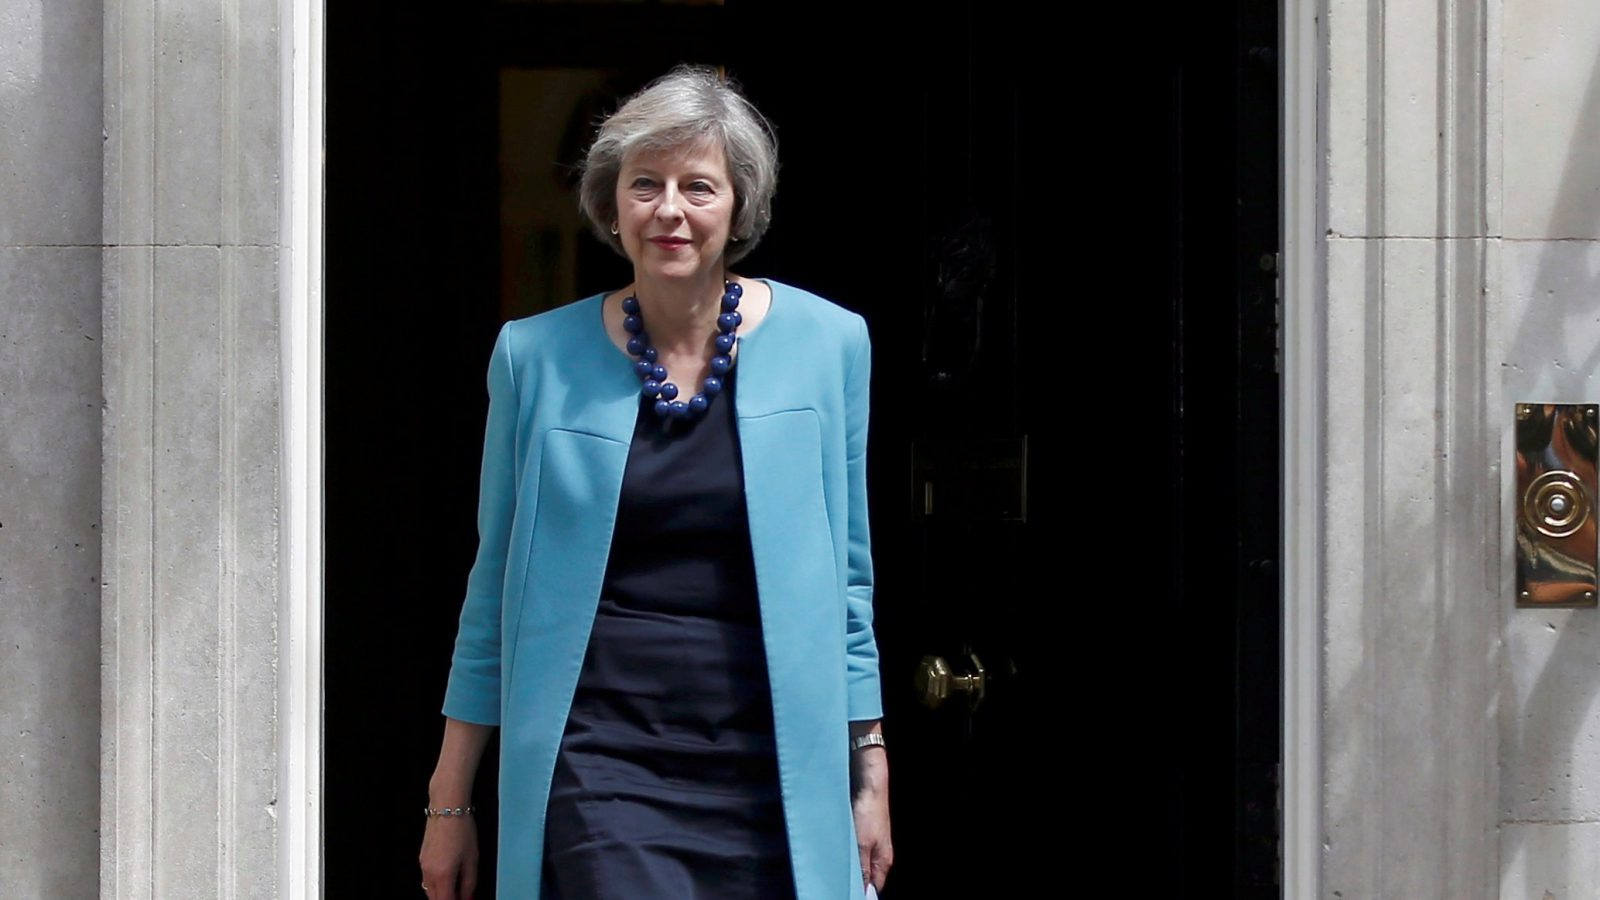 Britain's Home Secretary, Theresa May, leaves after a cabinet meeting in Downing Street in central London, Britain June 27, 2016.     REUTERS/Peter Nicholls/File Photo - RTSHEUI